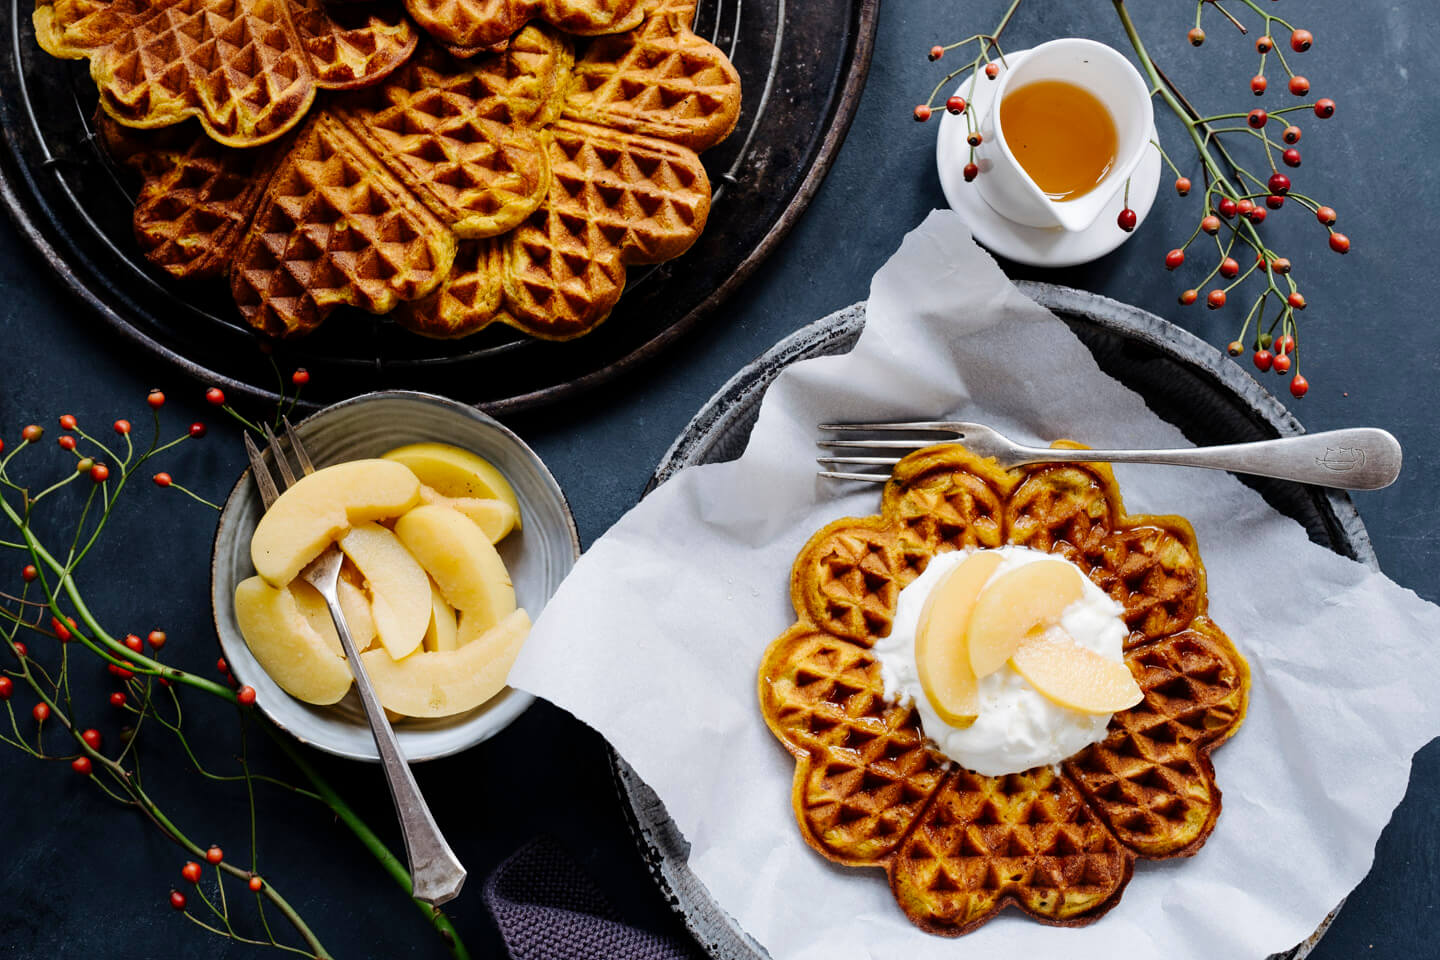 Pumpkin-Cinnamon-Waffles on a plate